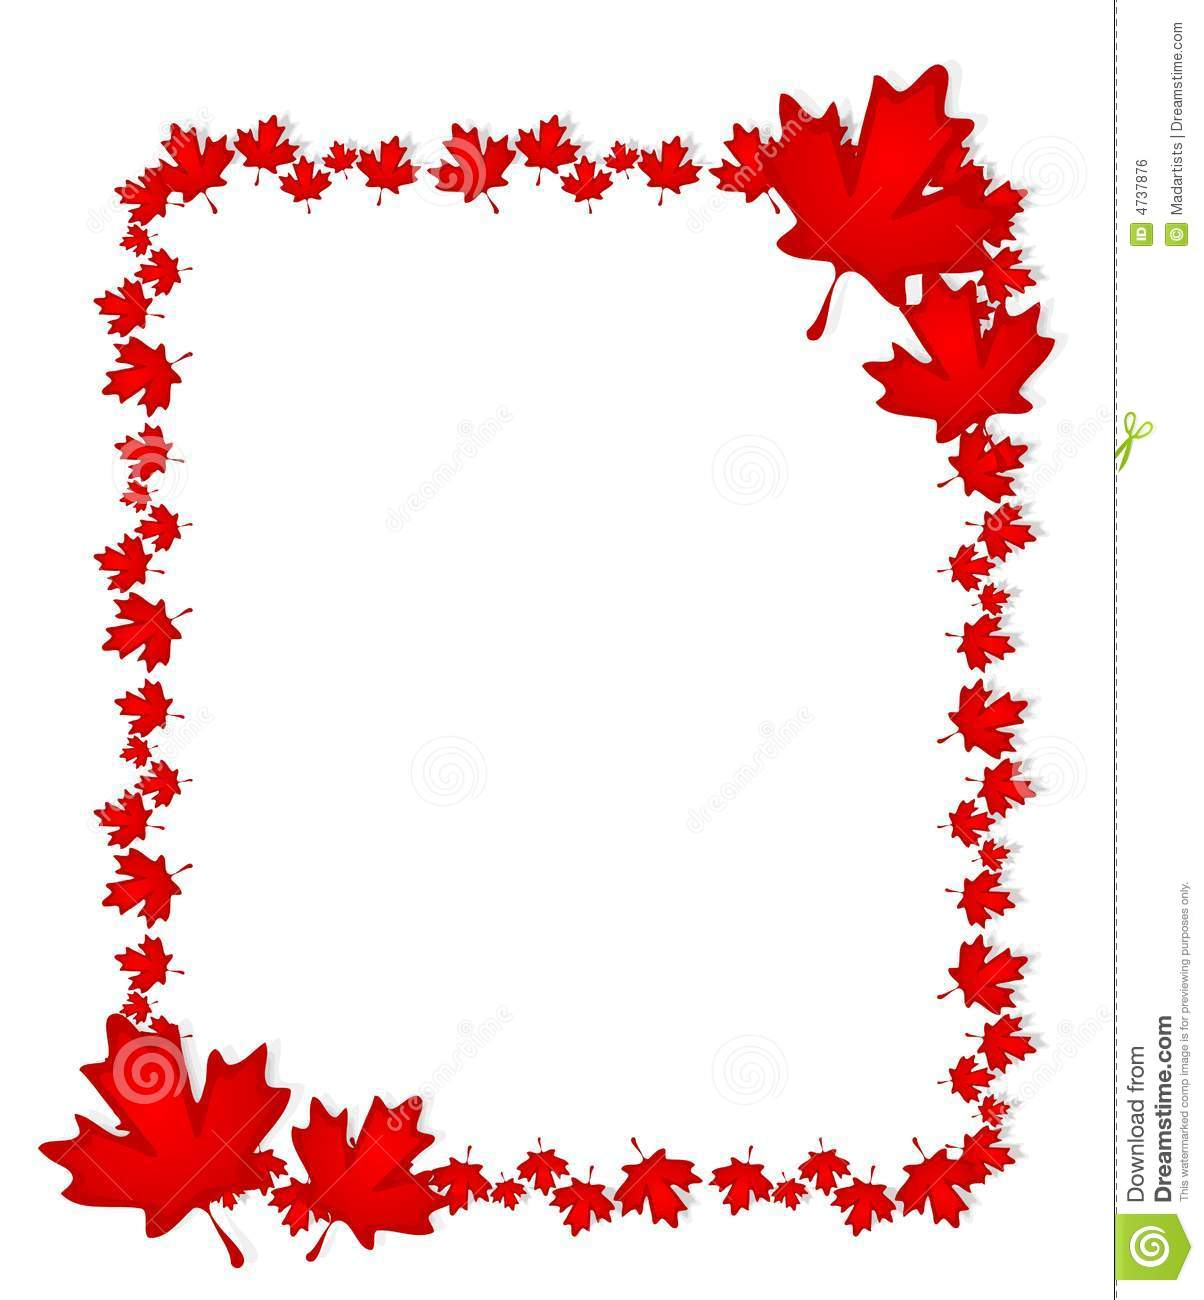 Leaf Border Clip Art Free Canadian day maple leaf border